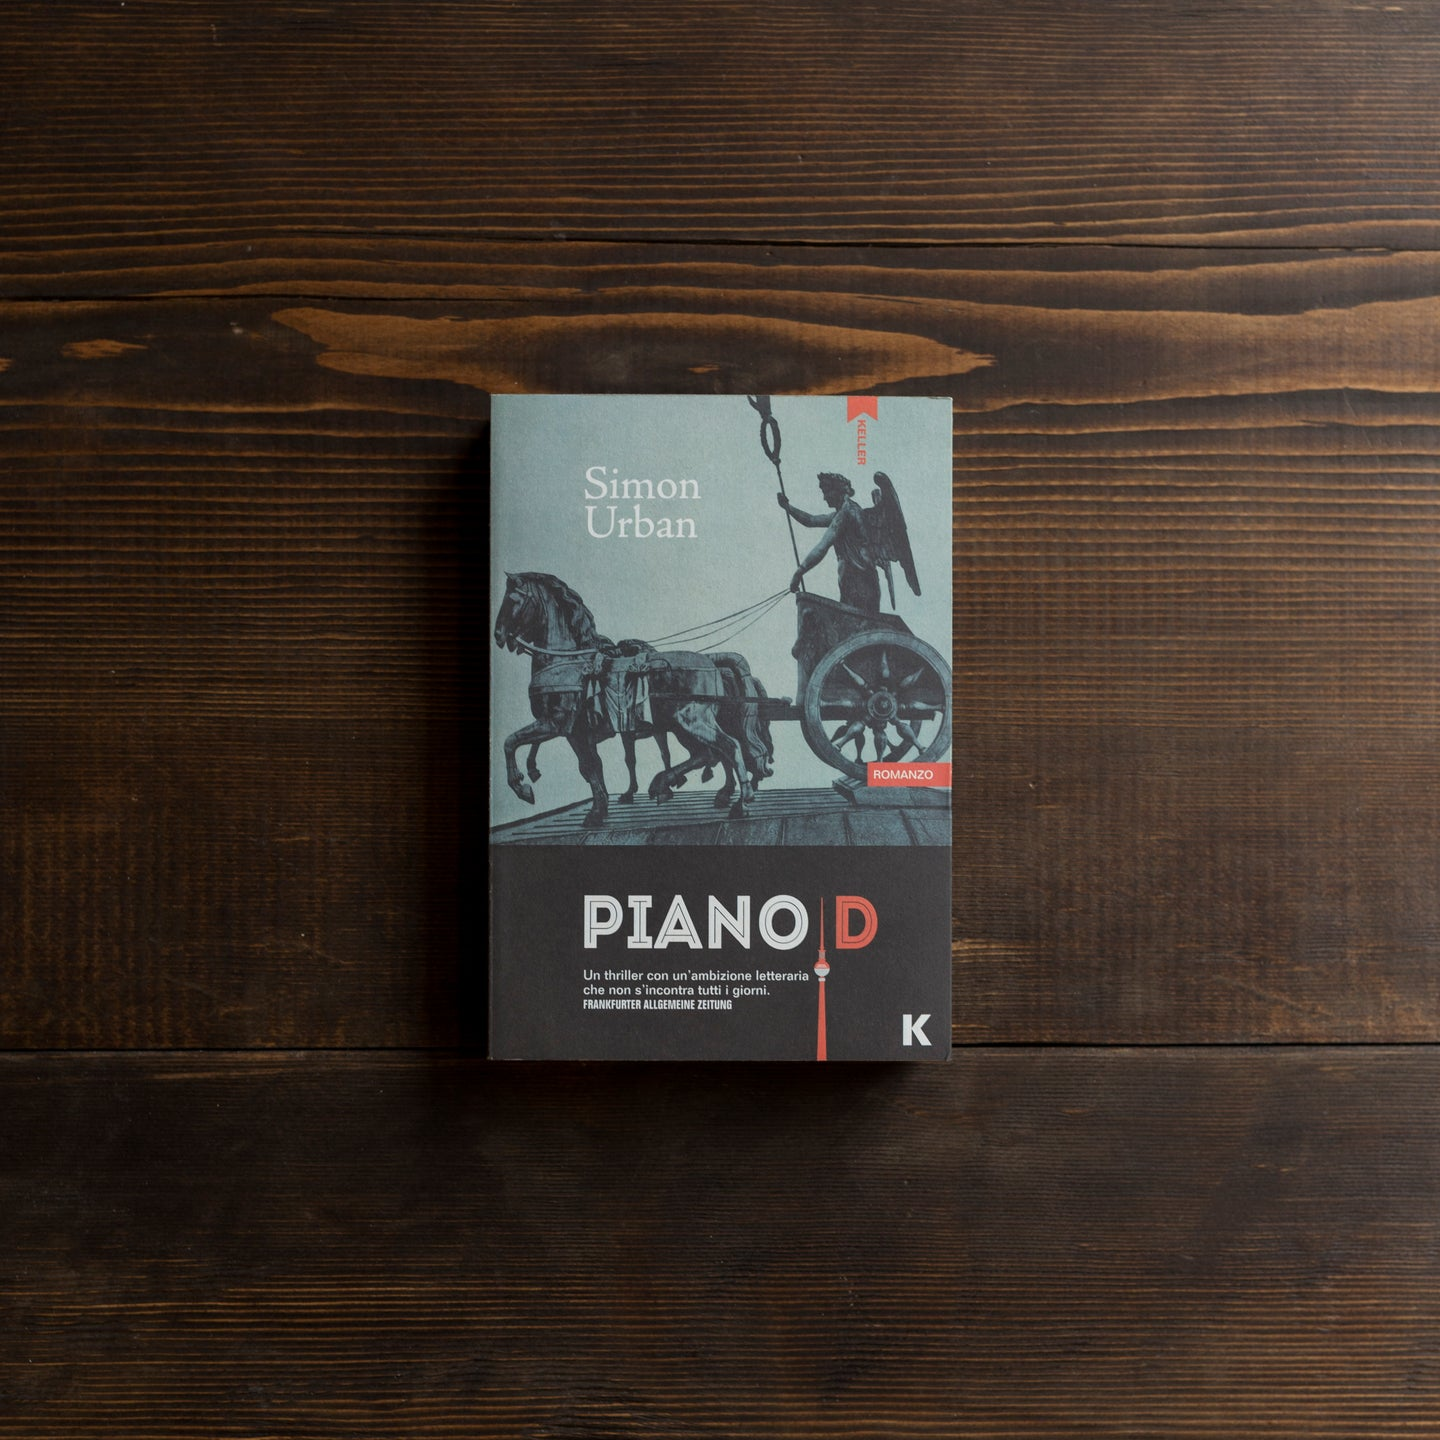 PIANO D - SIMON URBAN